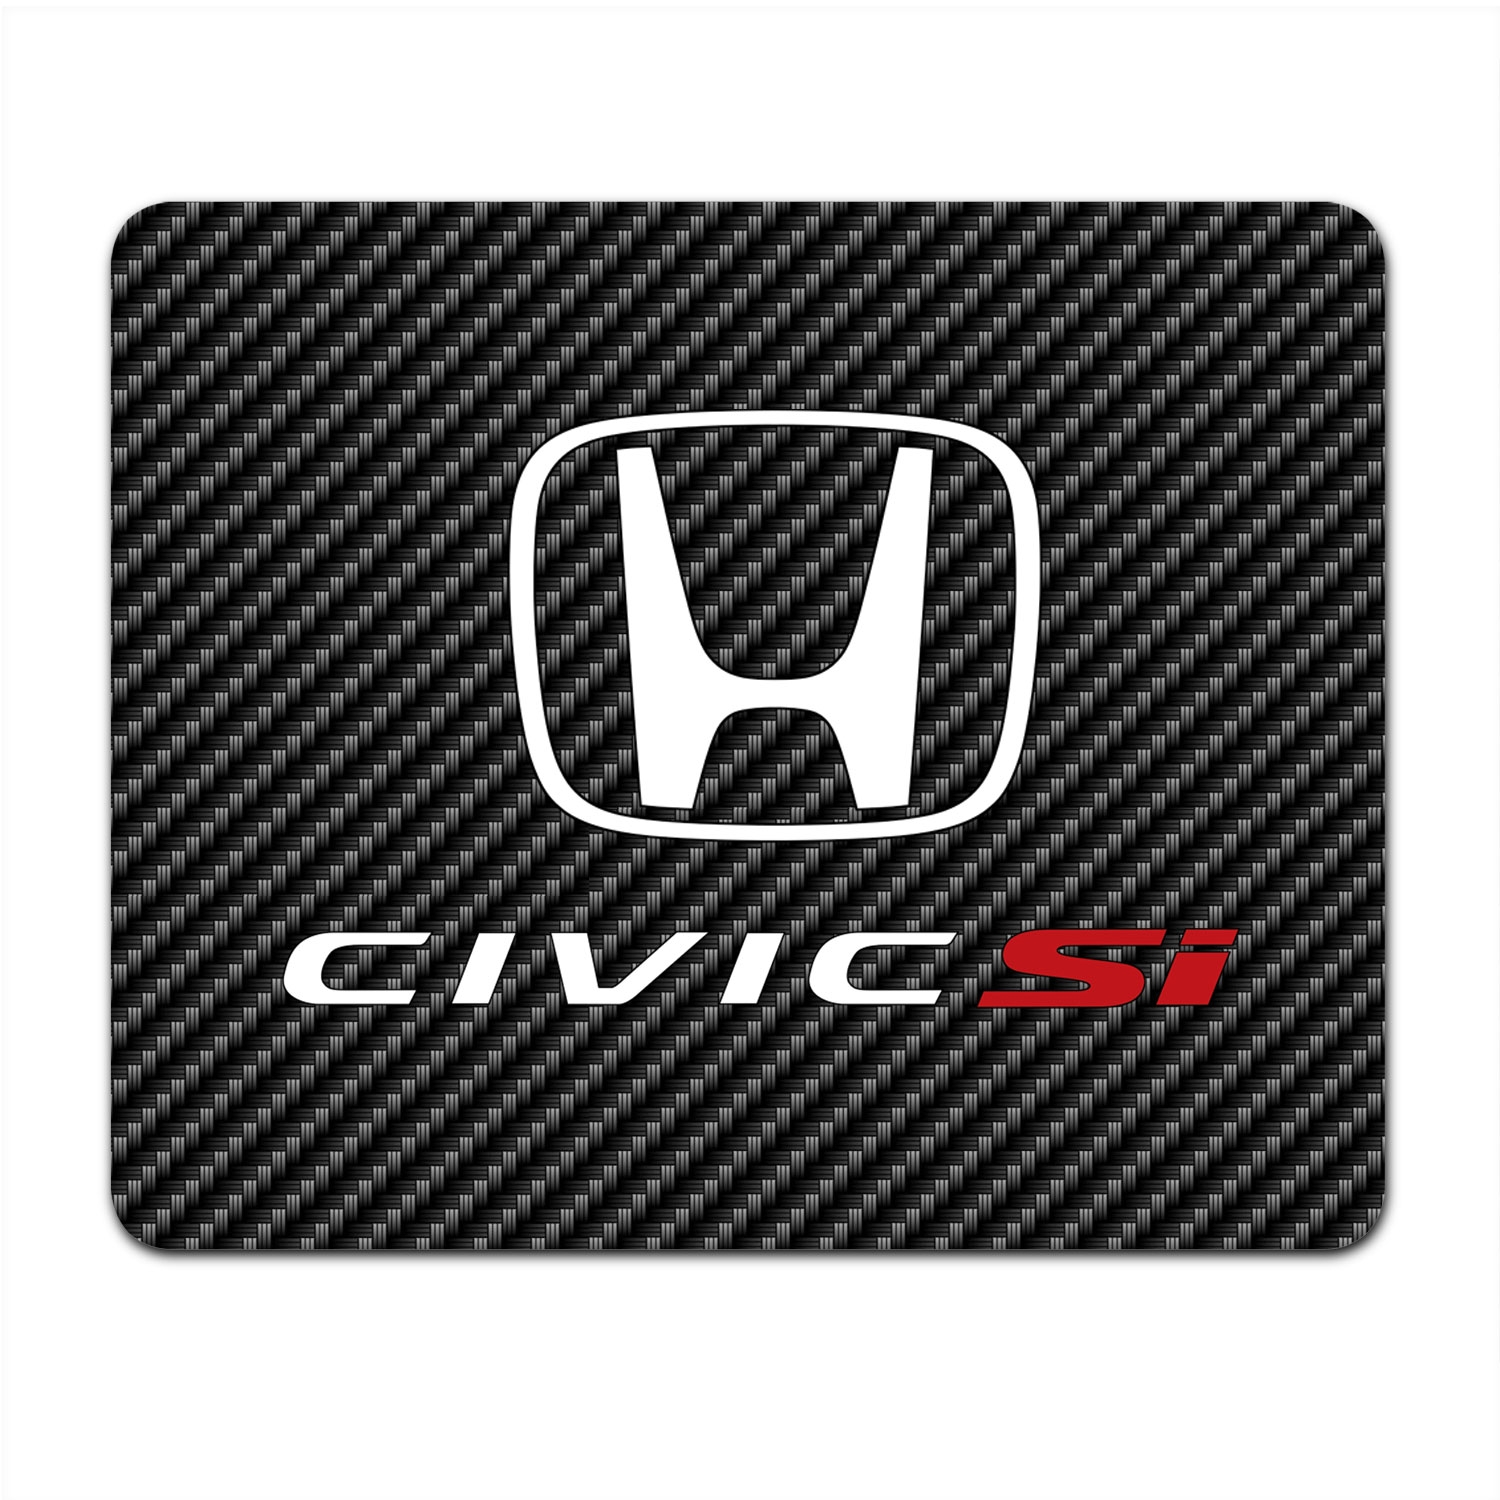 Honda Civic Si Black Carbon Fiber Texture Graphic PC Mouse Pad